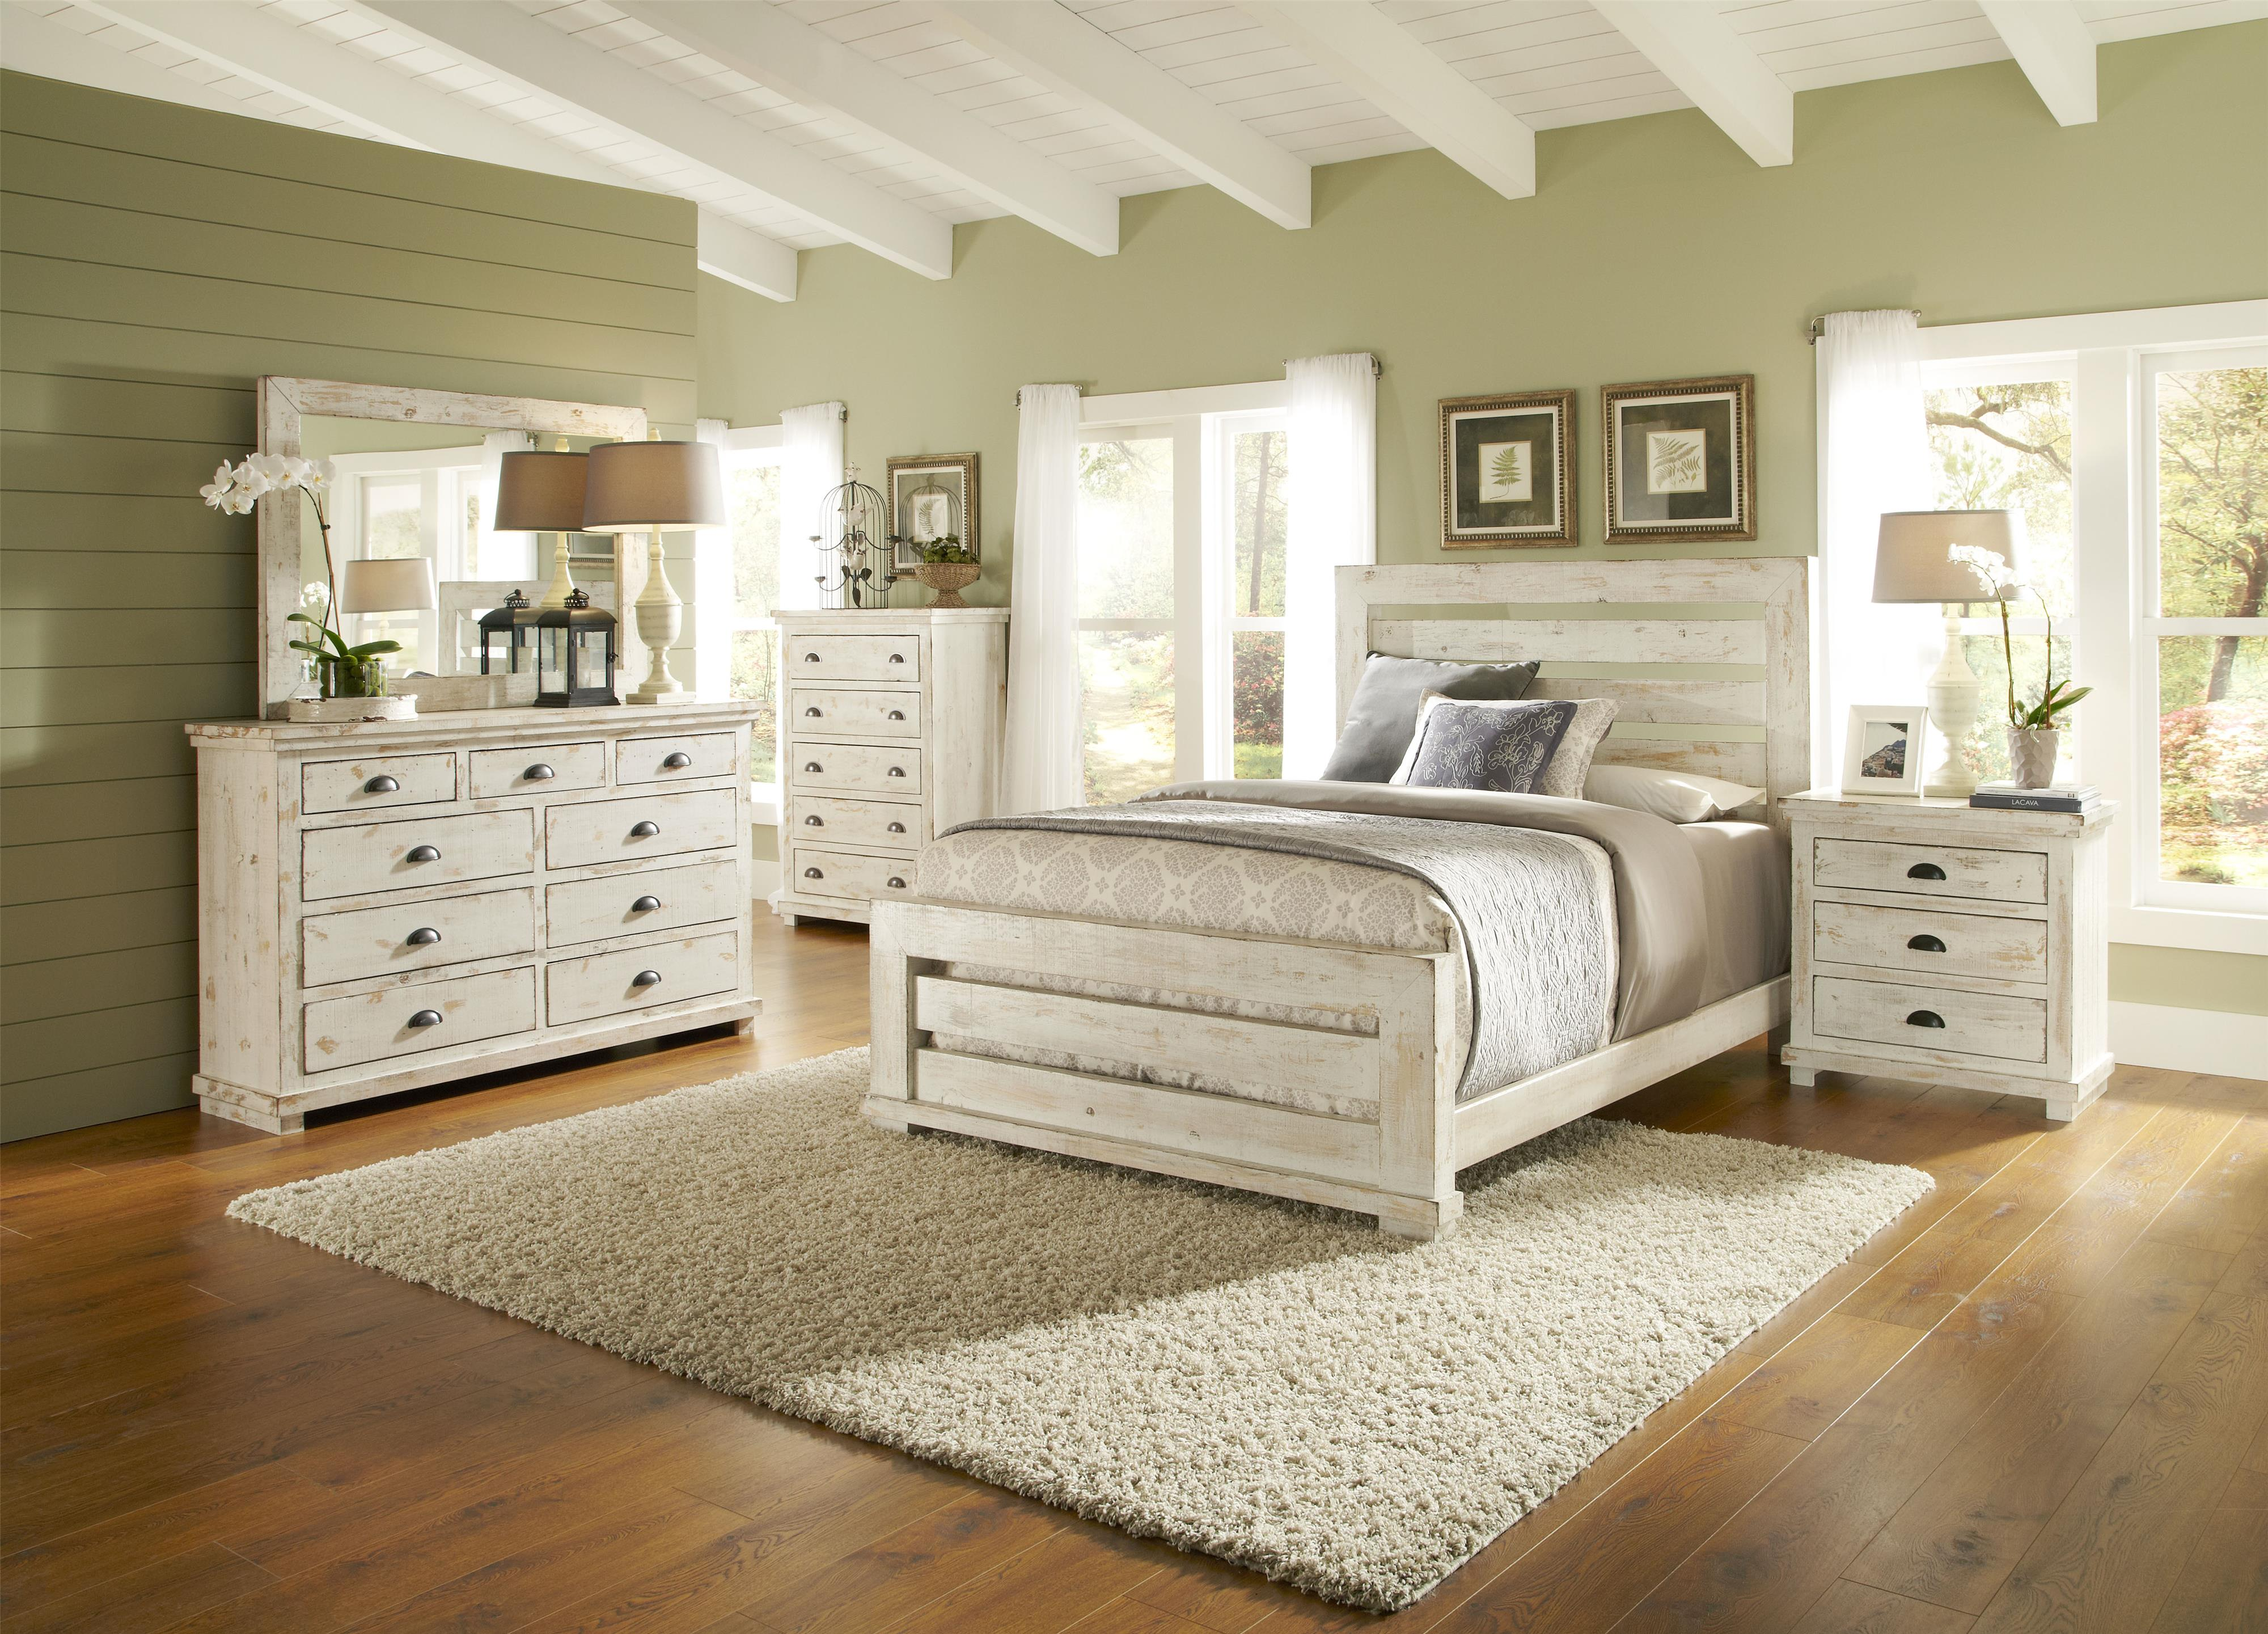 progressive furniture willow king bedroom group 17849 | products 2fprogressive furniture 2fcolor 2fwillow p608 p610 p612 p610 k bedroom group 1 b1